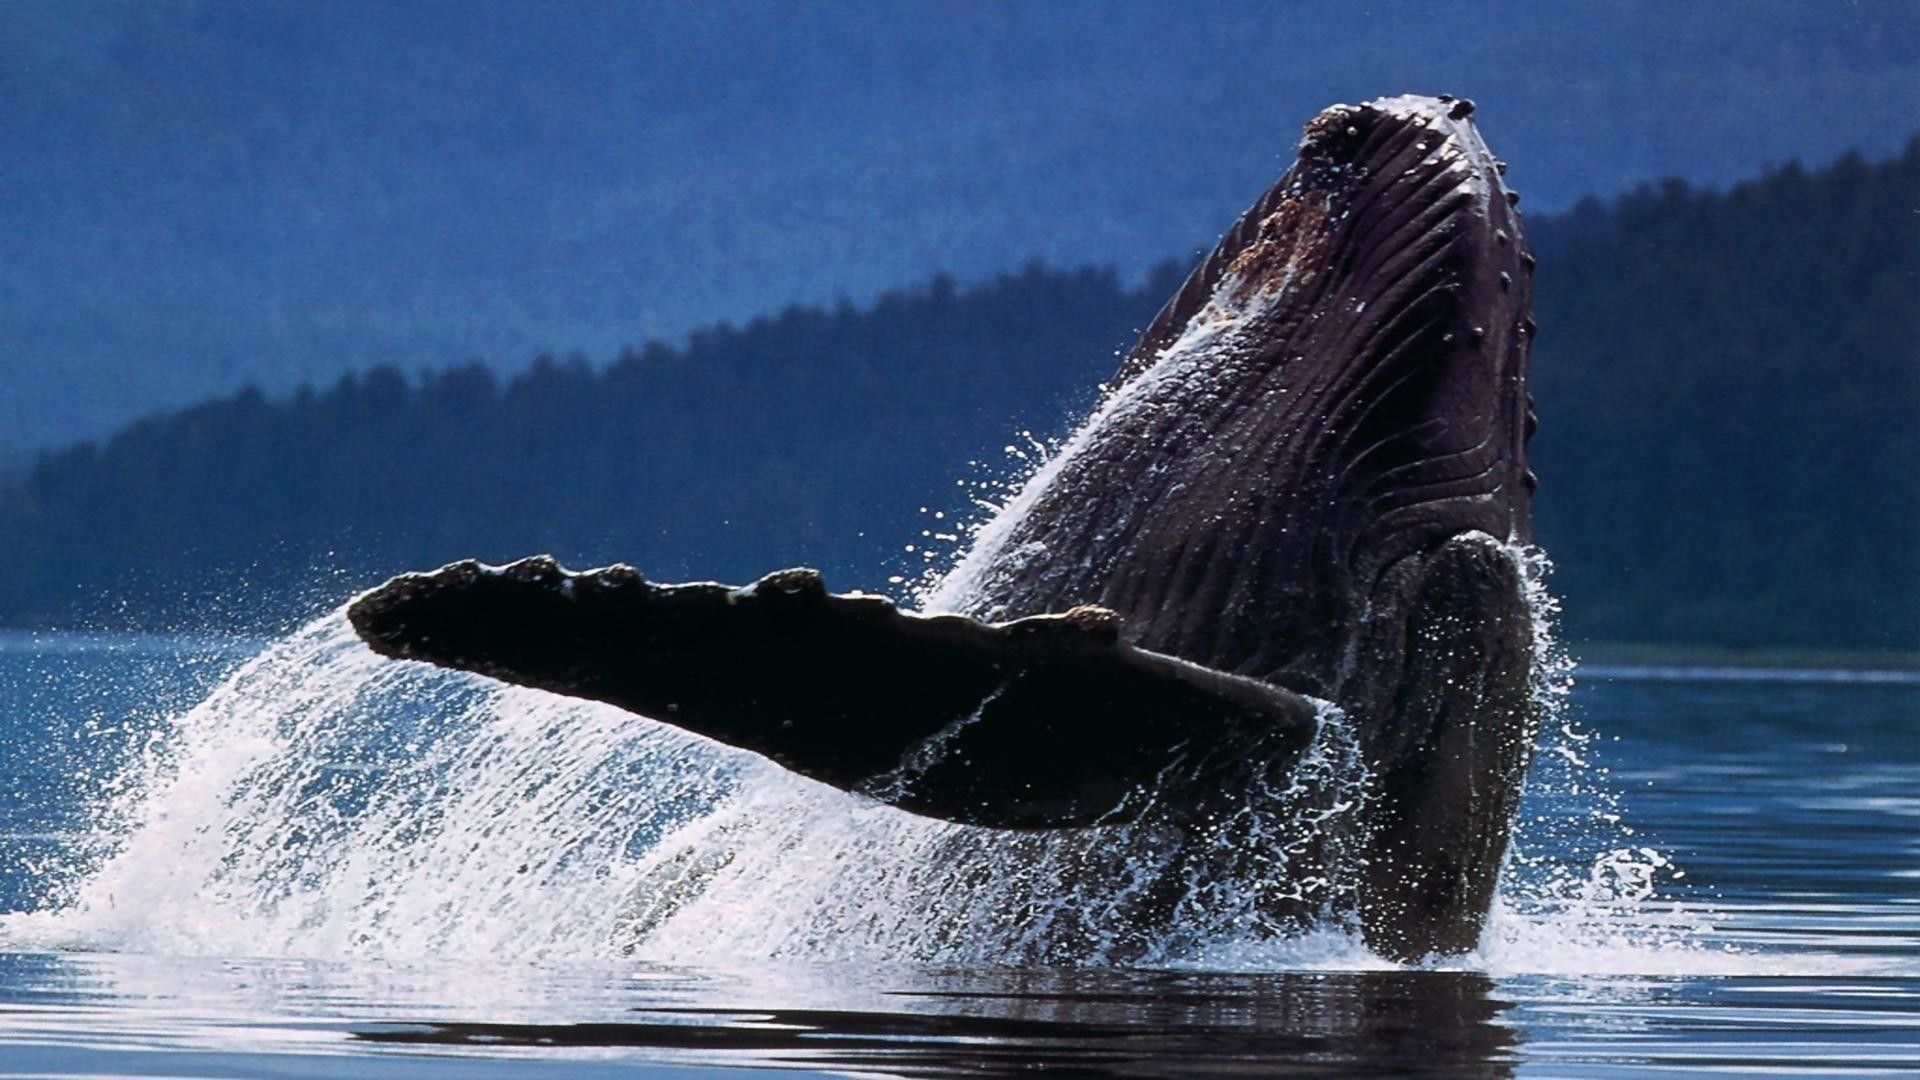 whales images free